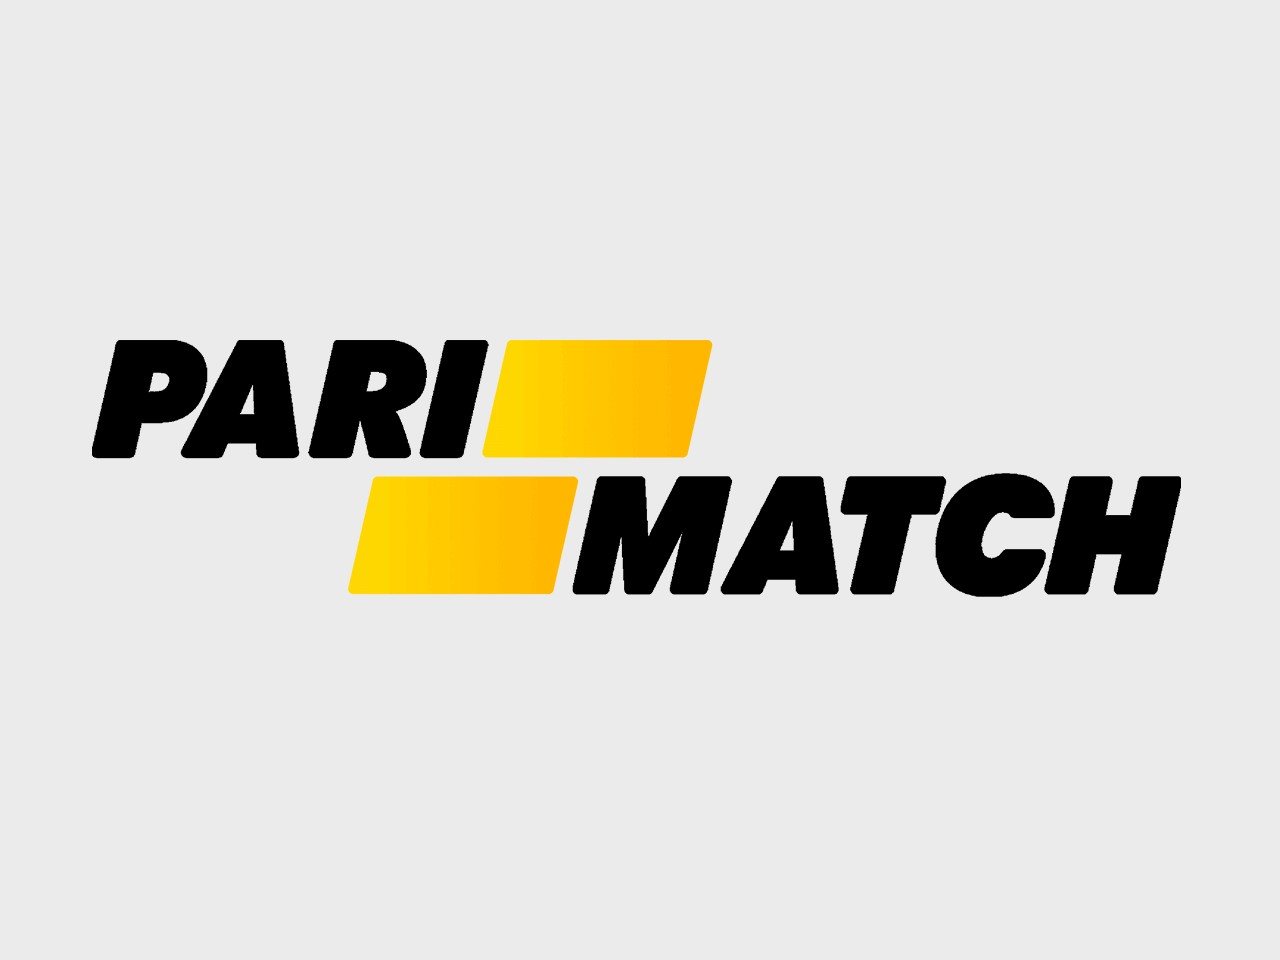 Parimatch is a betting platform that can help you make tons of money on sporting events. Here's a guide on how to master Parimatch betting.